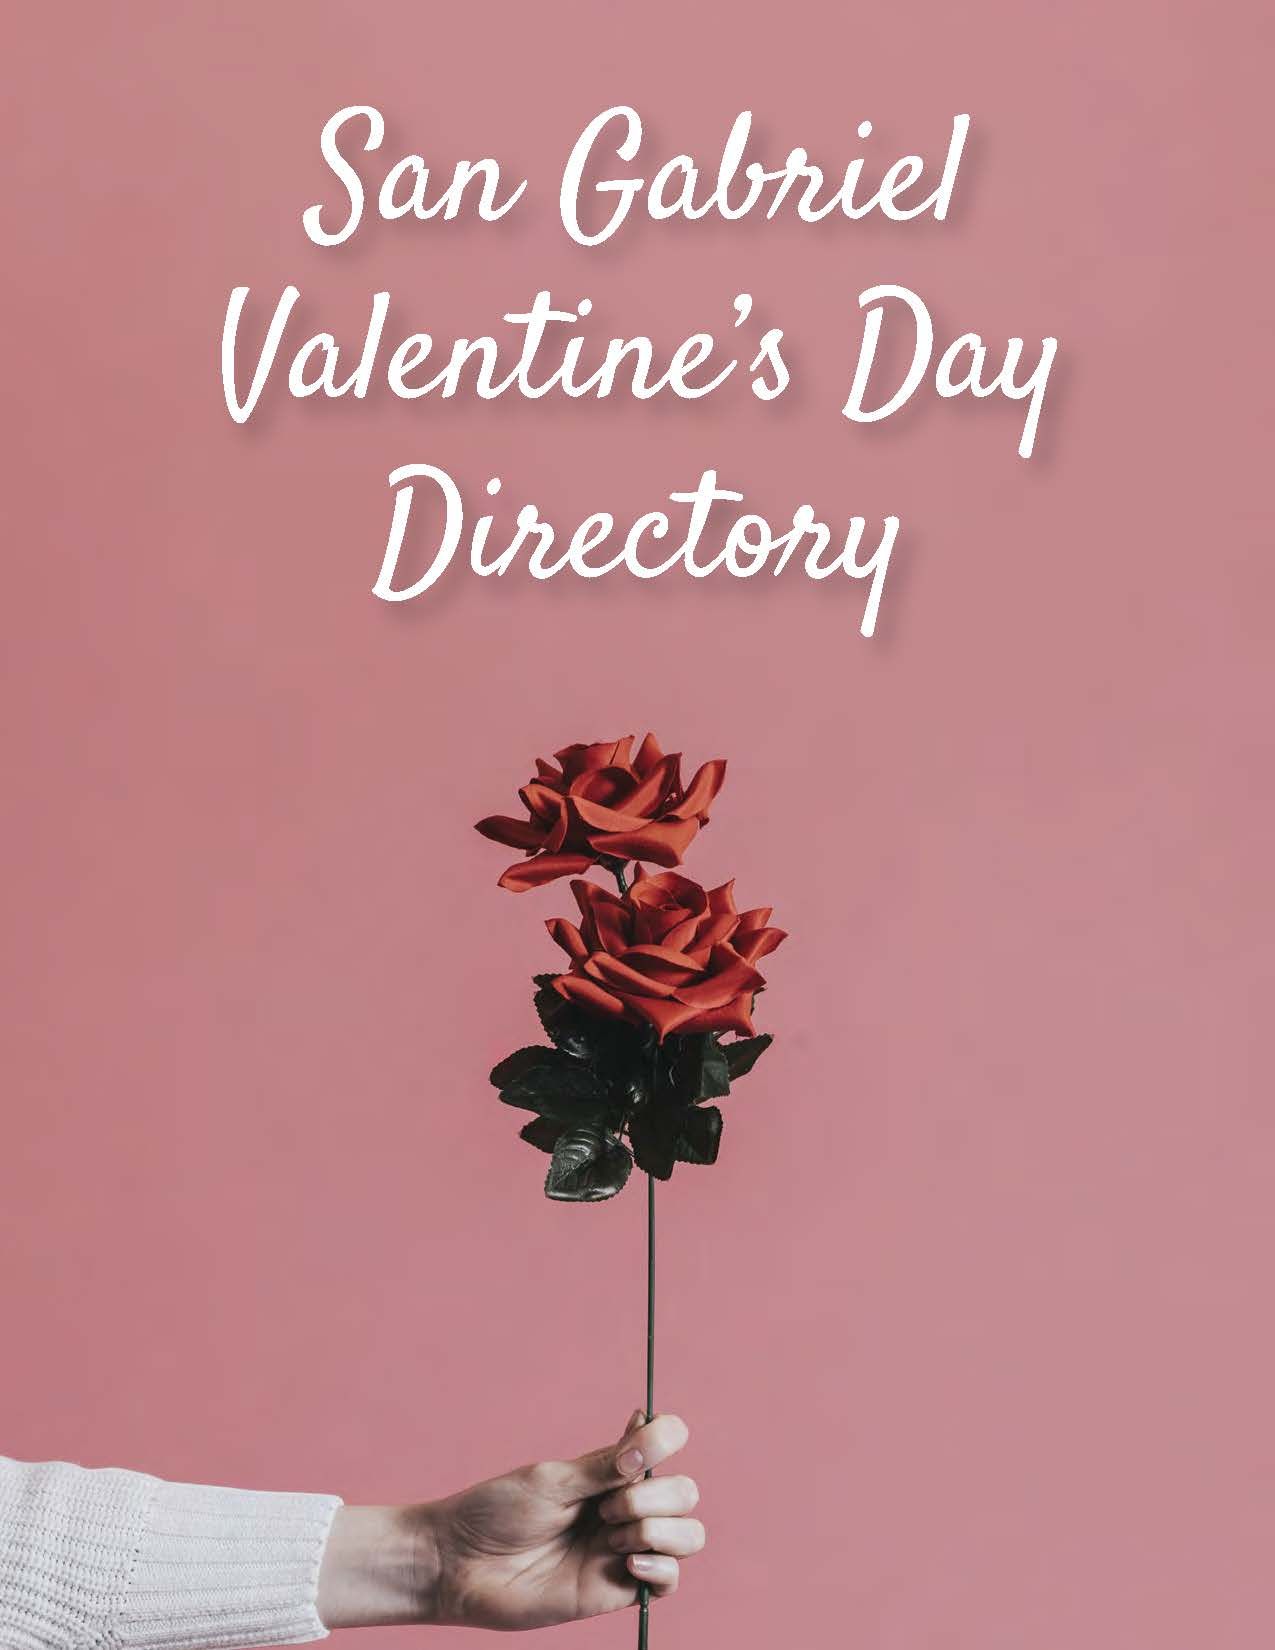 The Valentines Day Directory with hand holding long stem rose